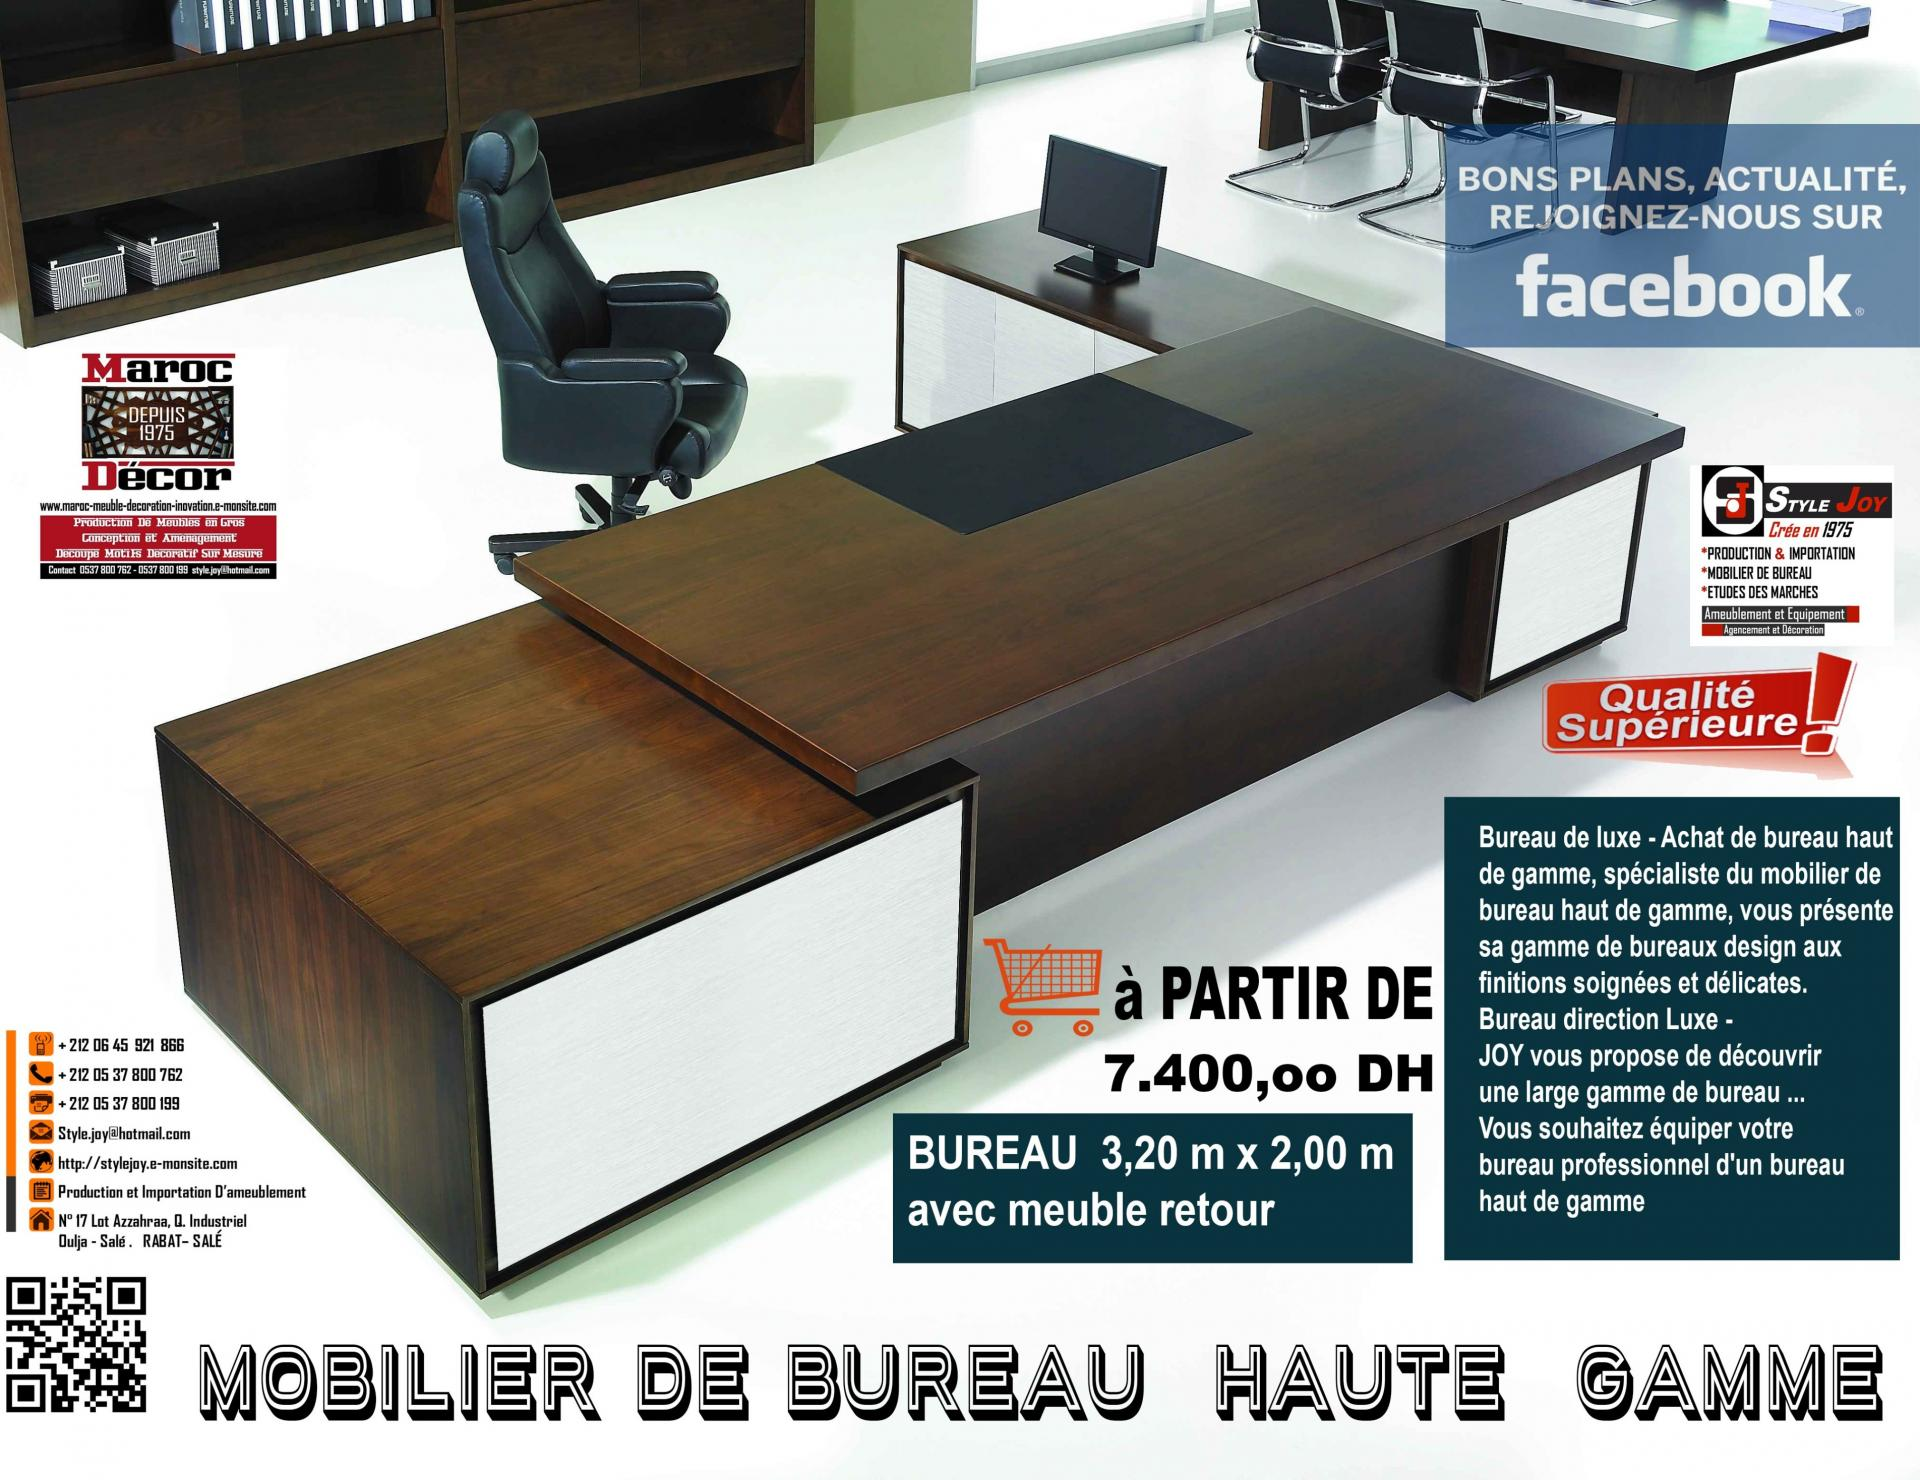 Meuble Art Deco Casablanca N1 En Mobilier Bureau Rabat Casablanca Deco Inovation Meuble Rabat